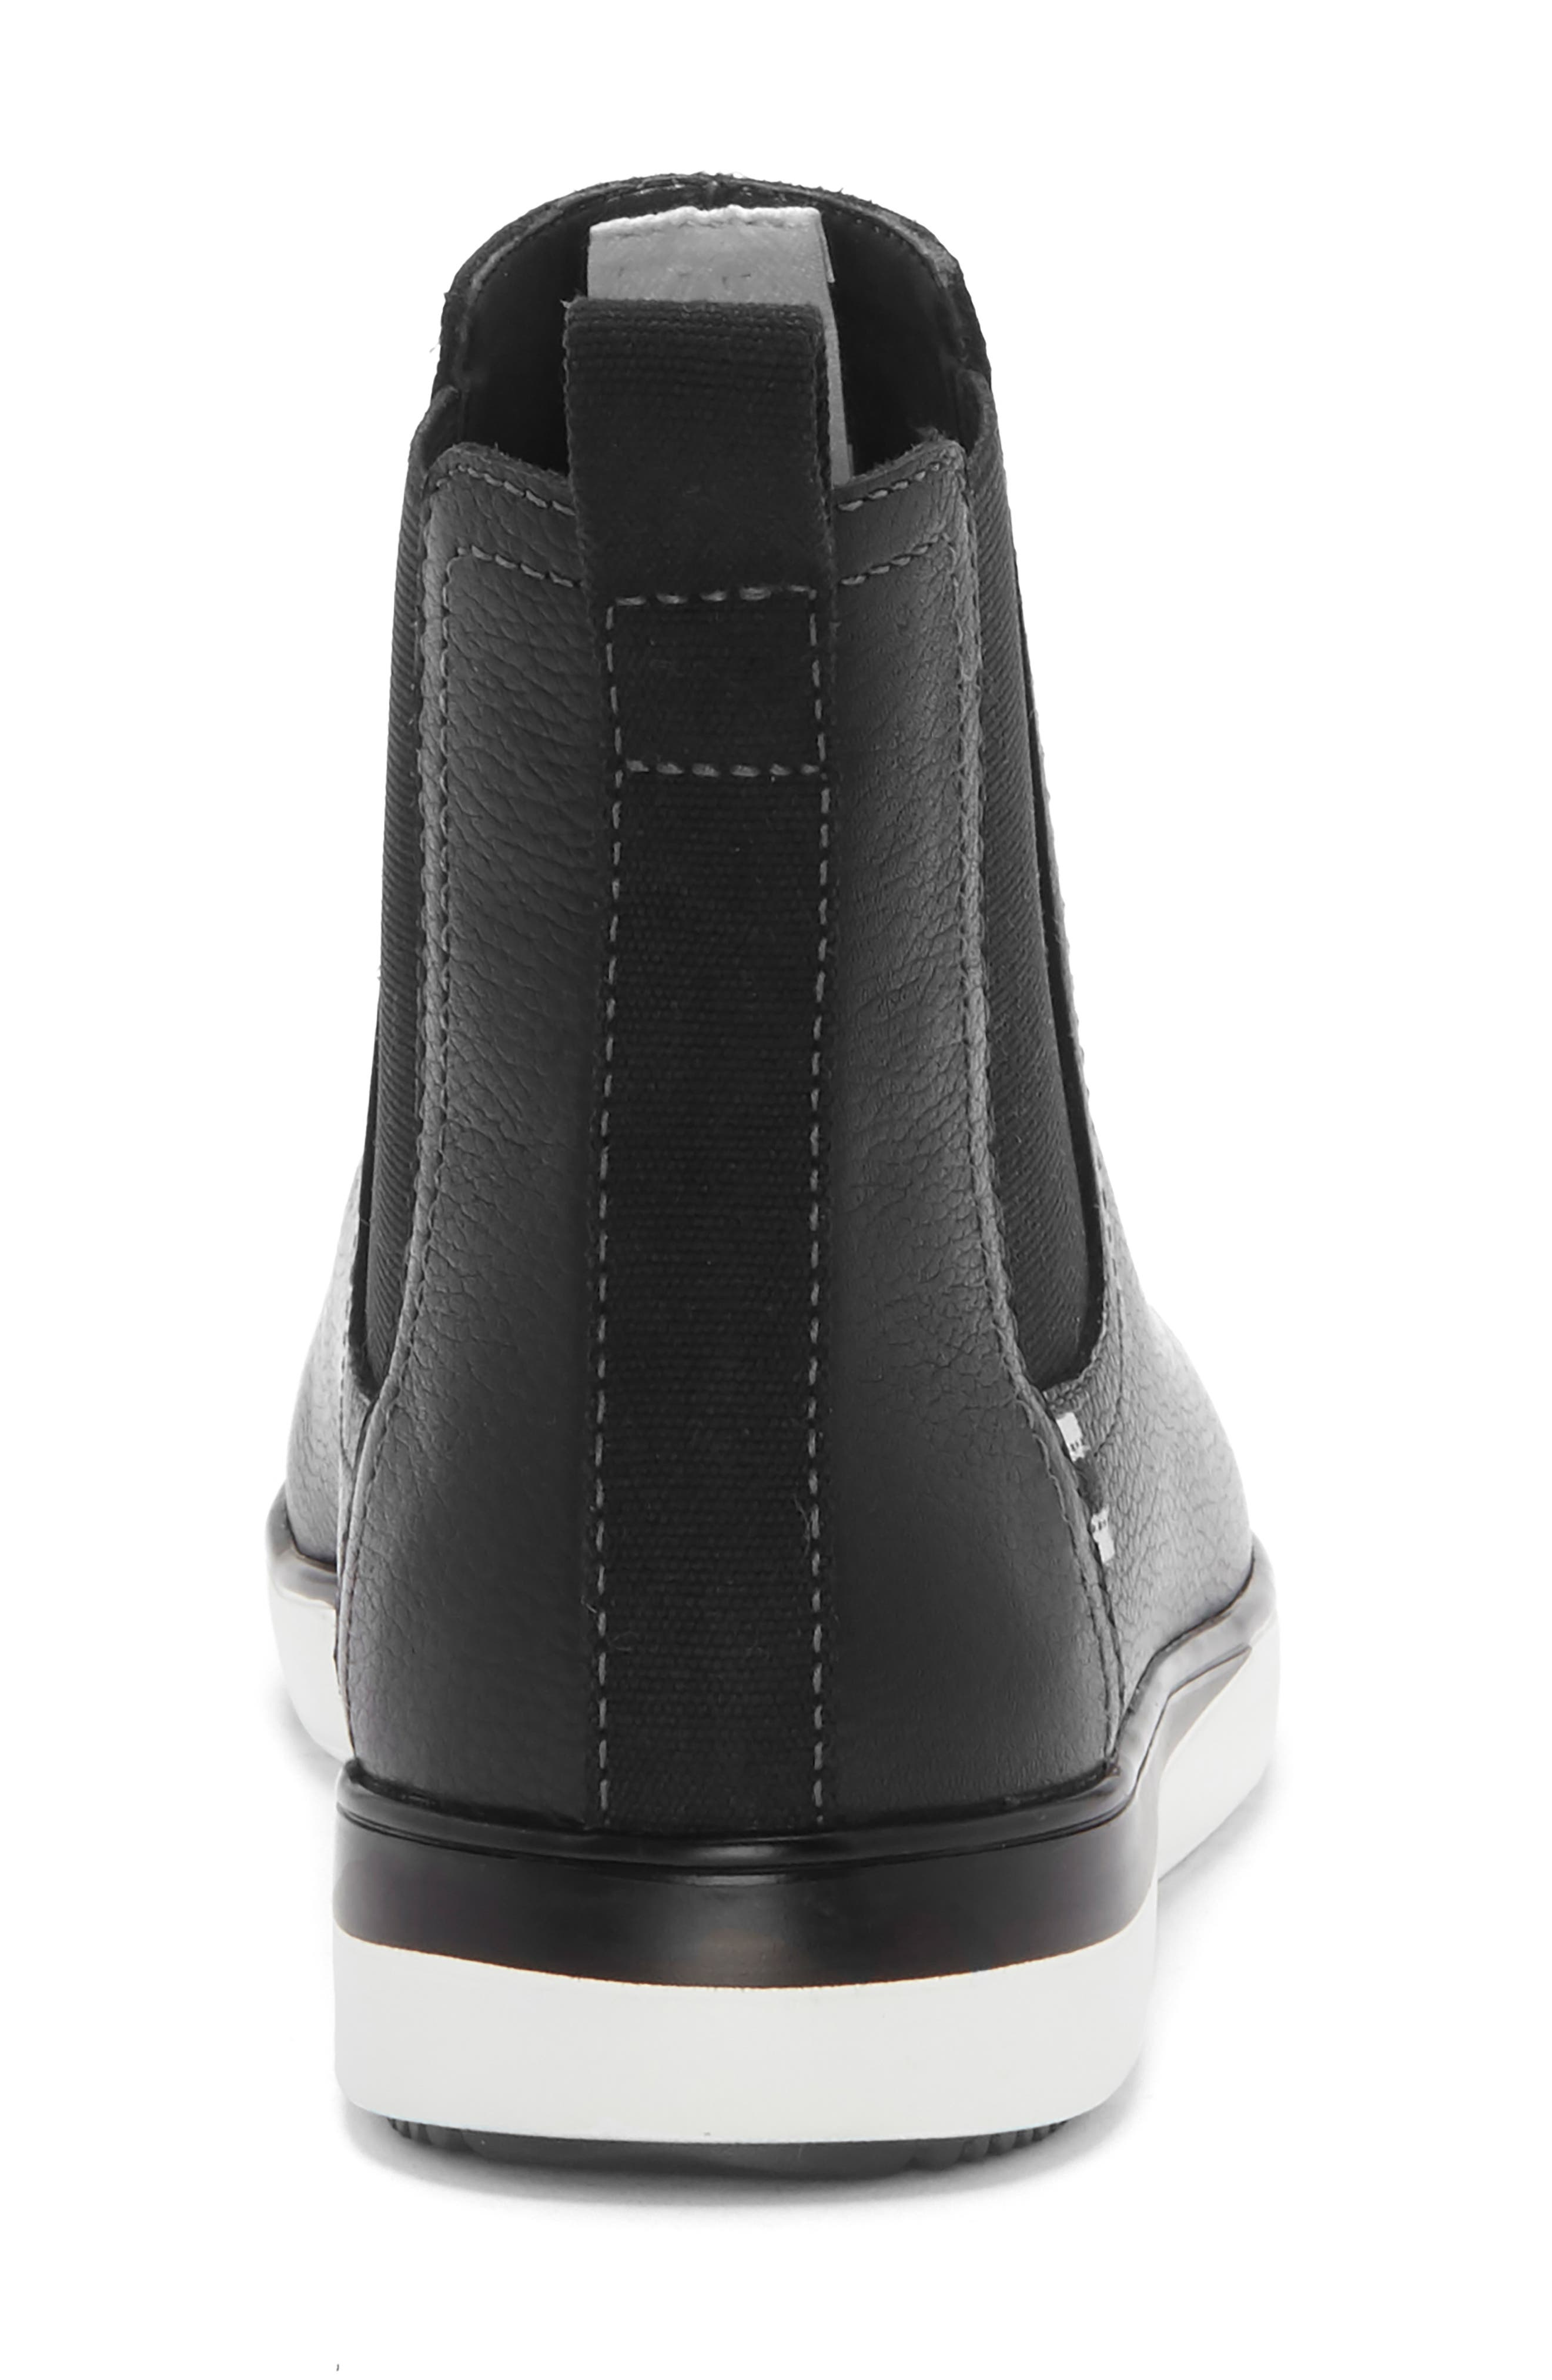 Alvarie Chelsea Bootie,                             Alternate thumbnail 8, color,                             BLACK LEATHER